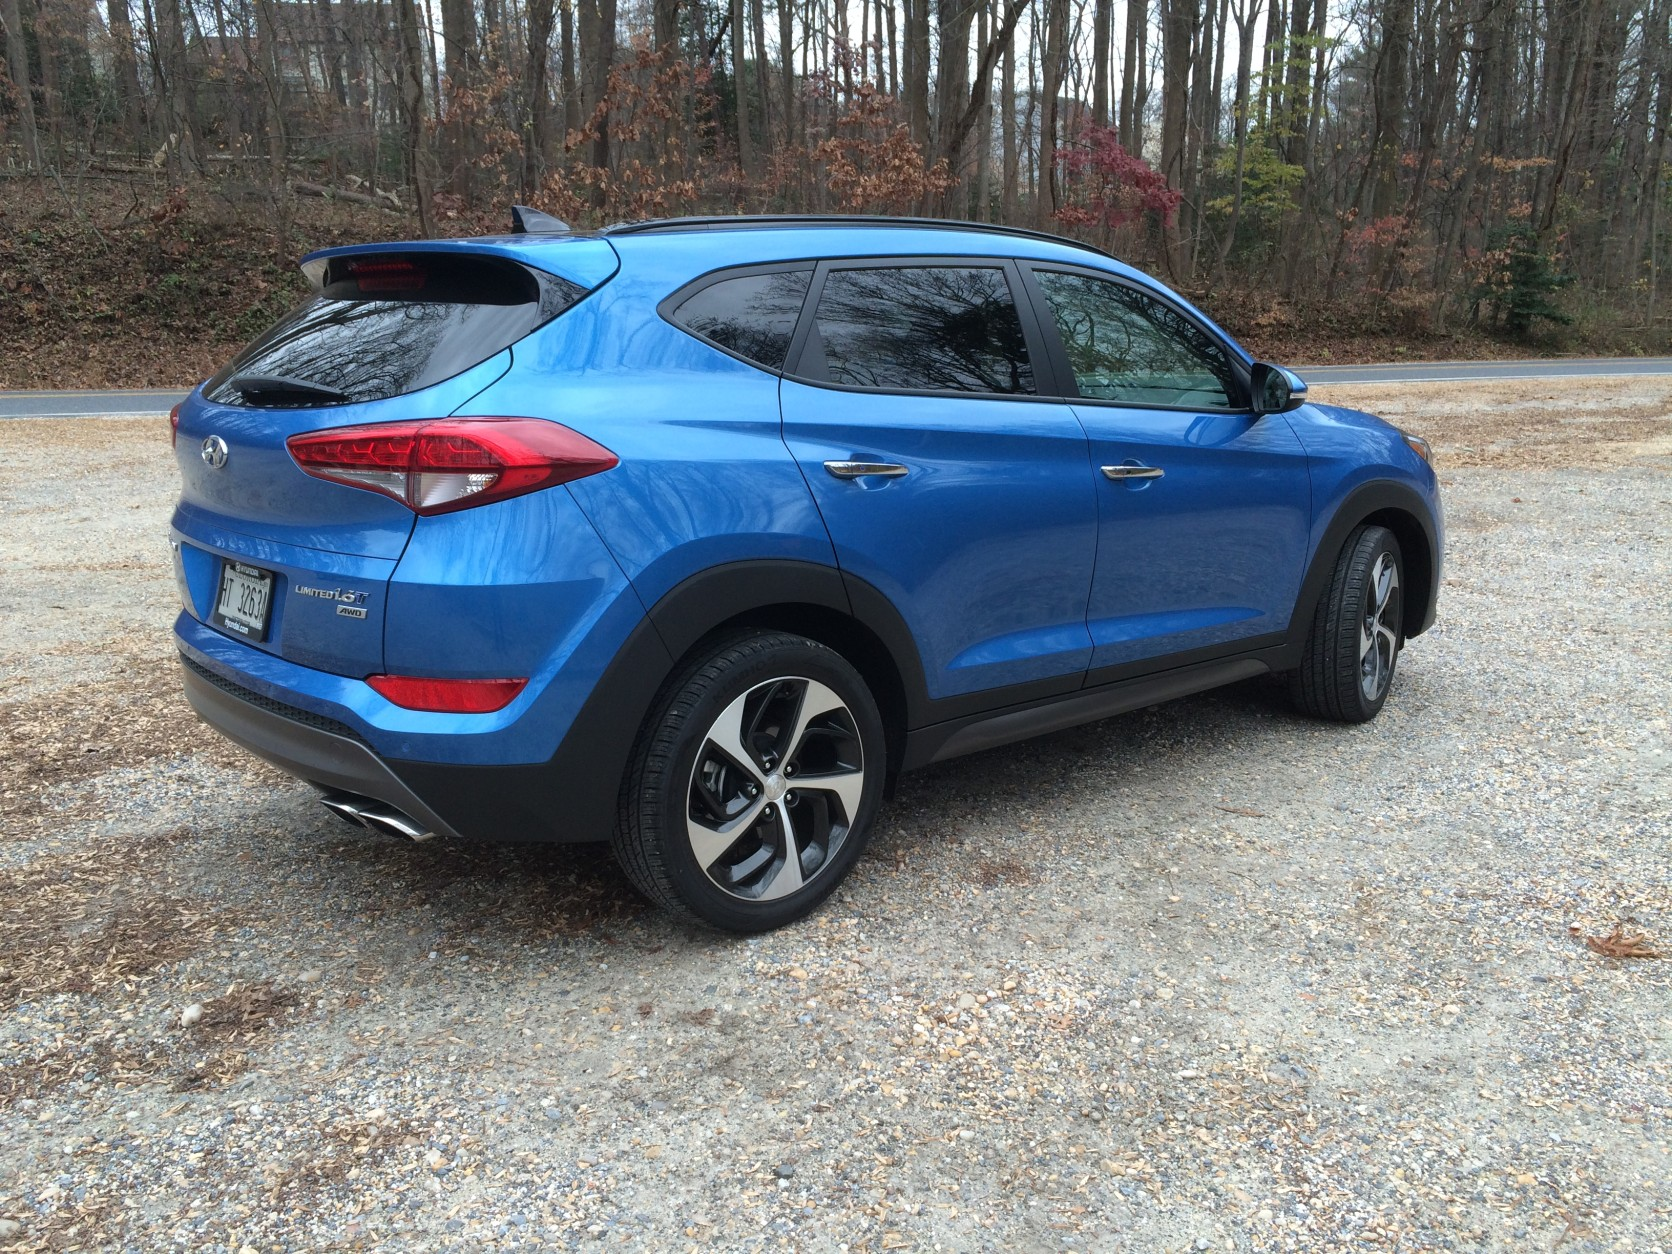 The 2016 Tucson is larger than the previous model but is still a smaller crossover. (WTOP/Mike Parris)